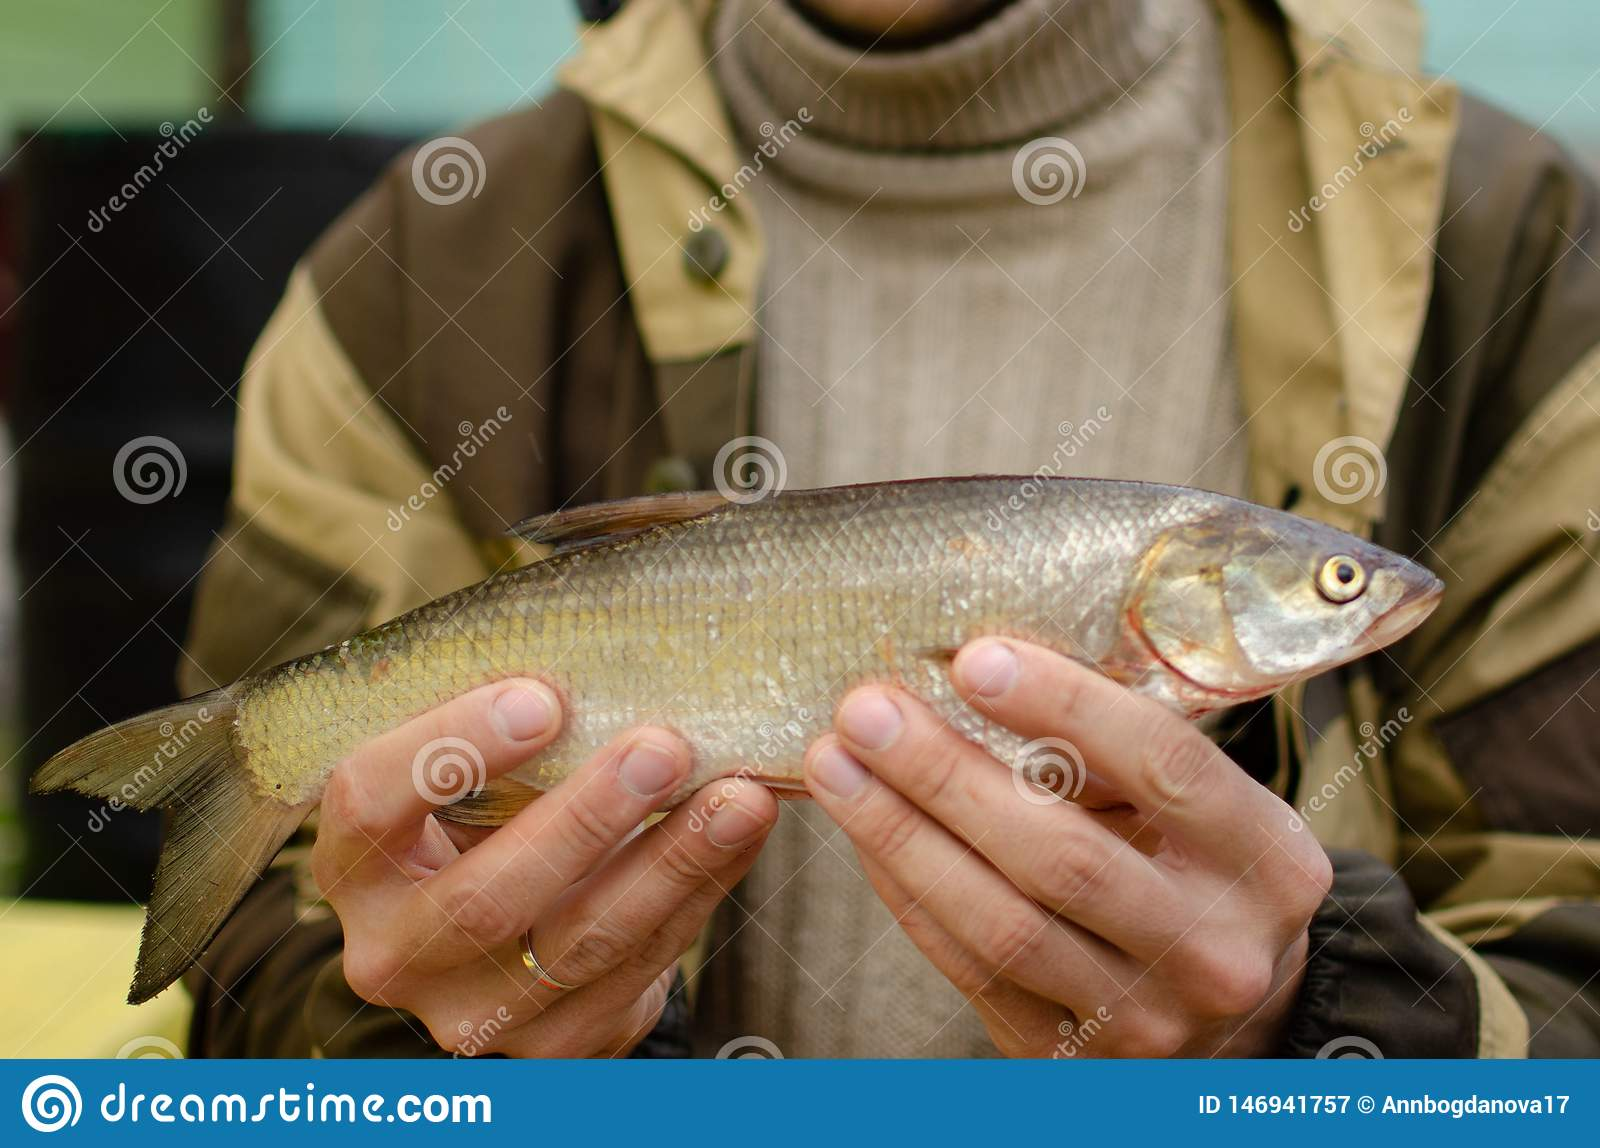 Man holds caught fish in his hands.